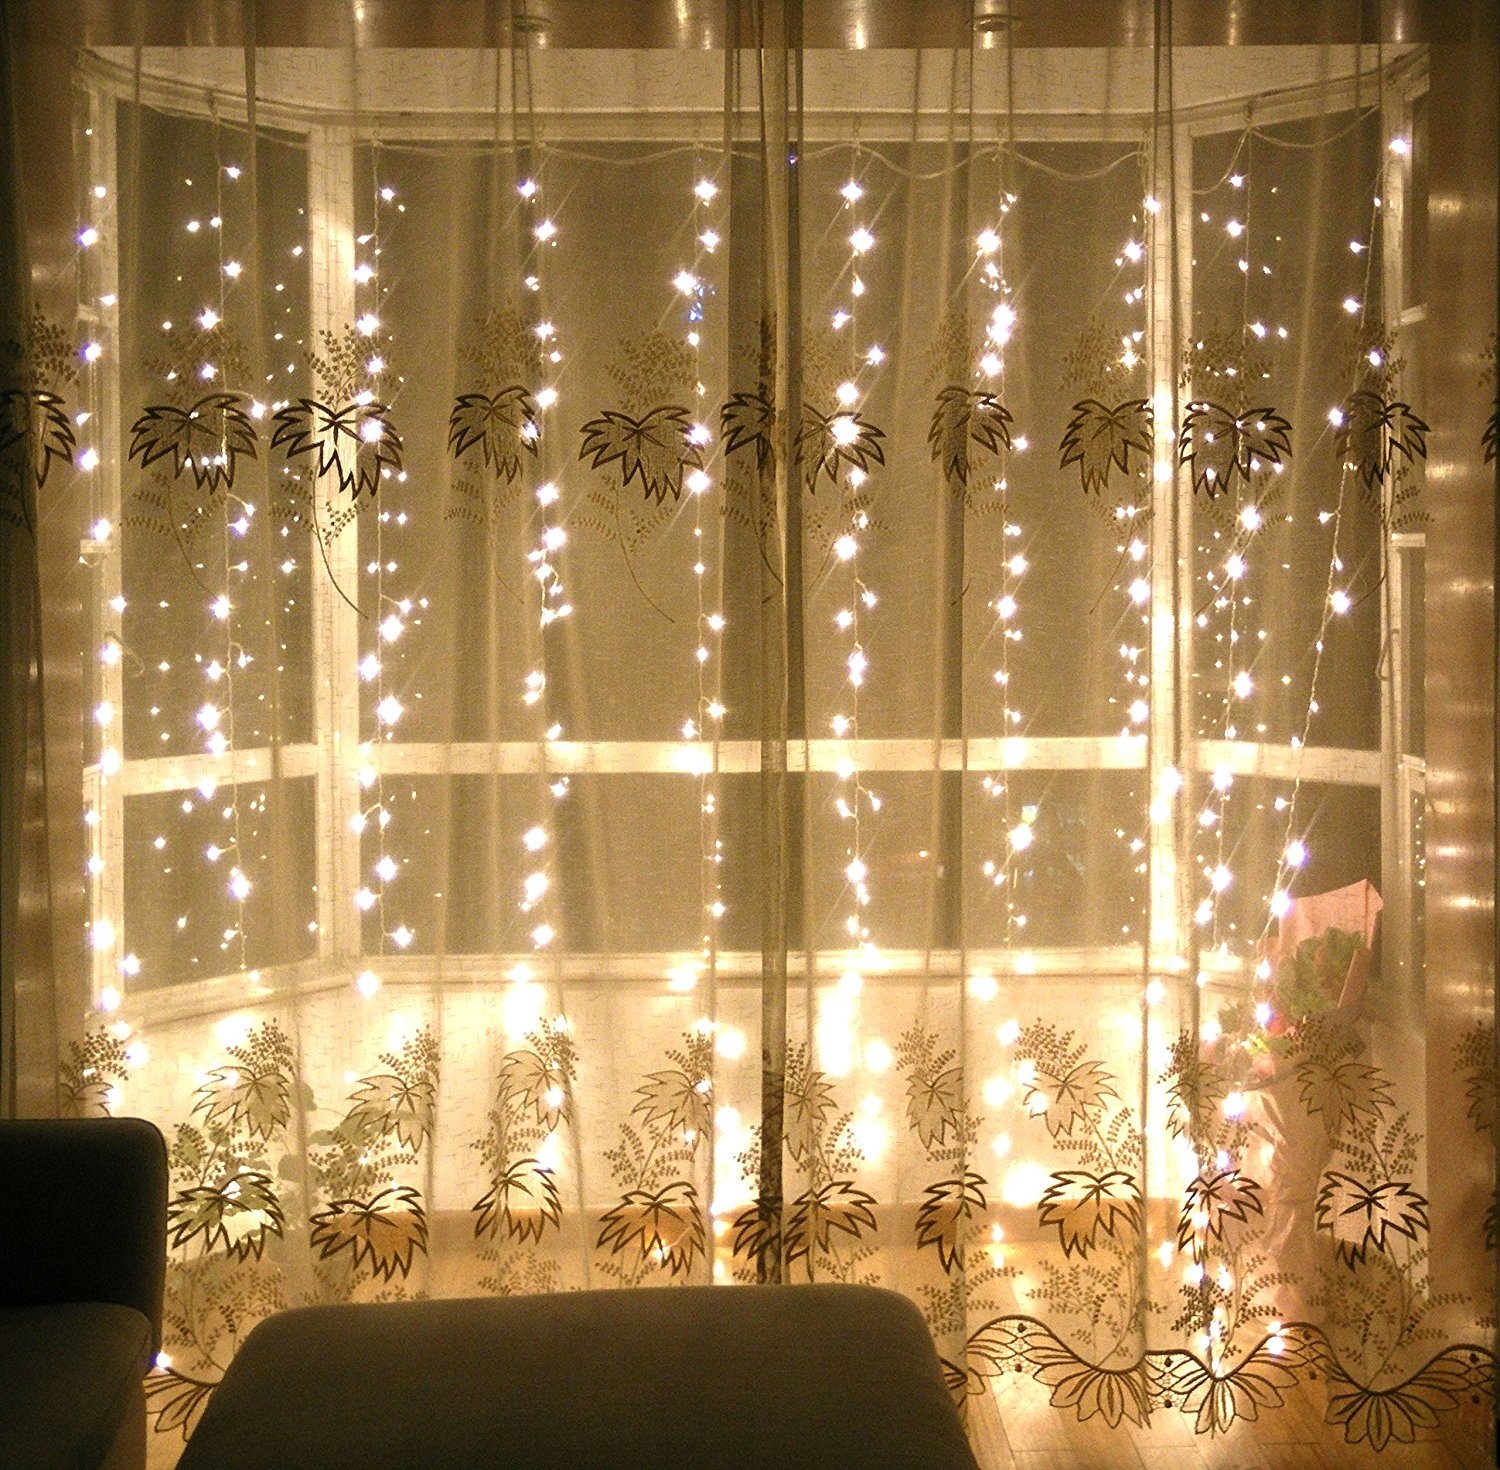 Lebefe x 300 led icicle curtain lights for Lights for home decor